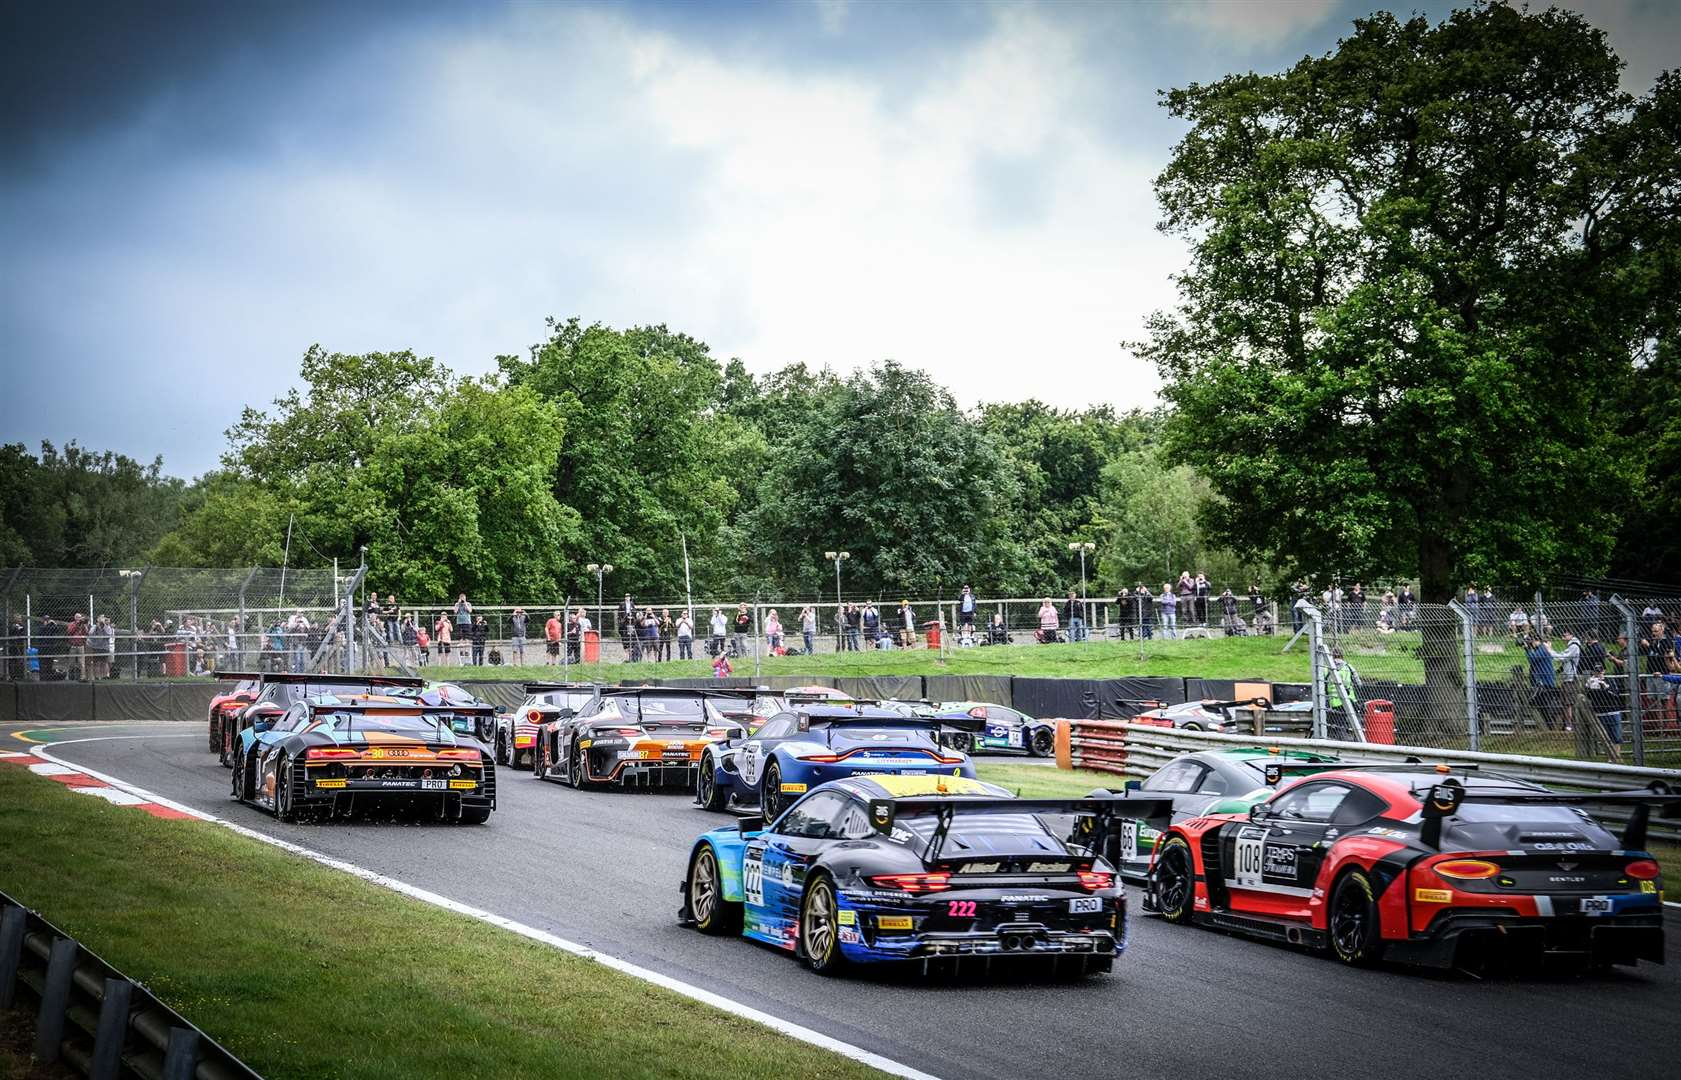 A 28-car field took to the 2.4-mile Grand Prix loop on Sunday. Picture: SRO